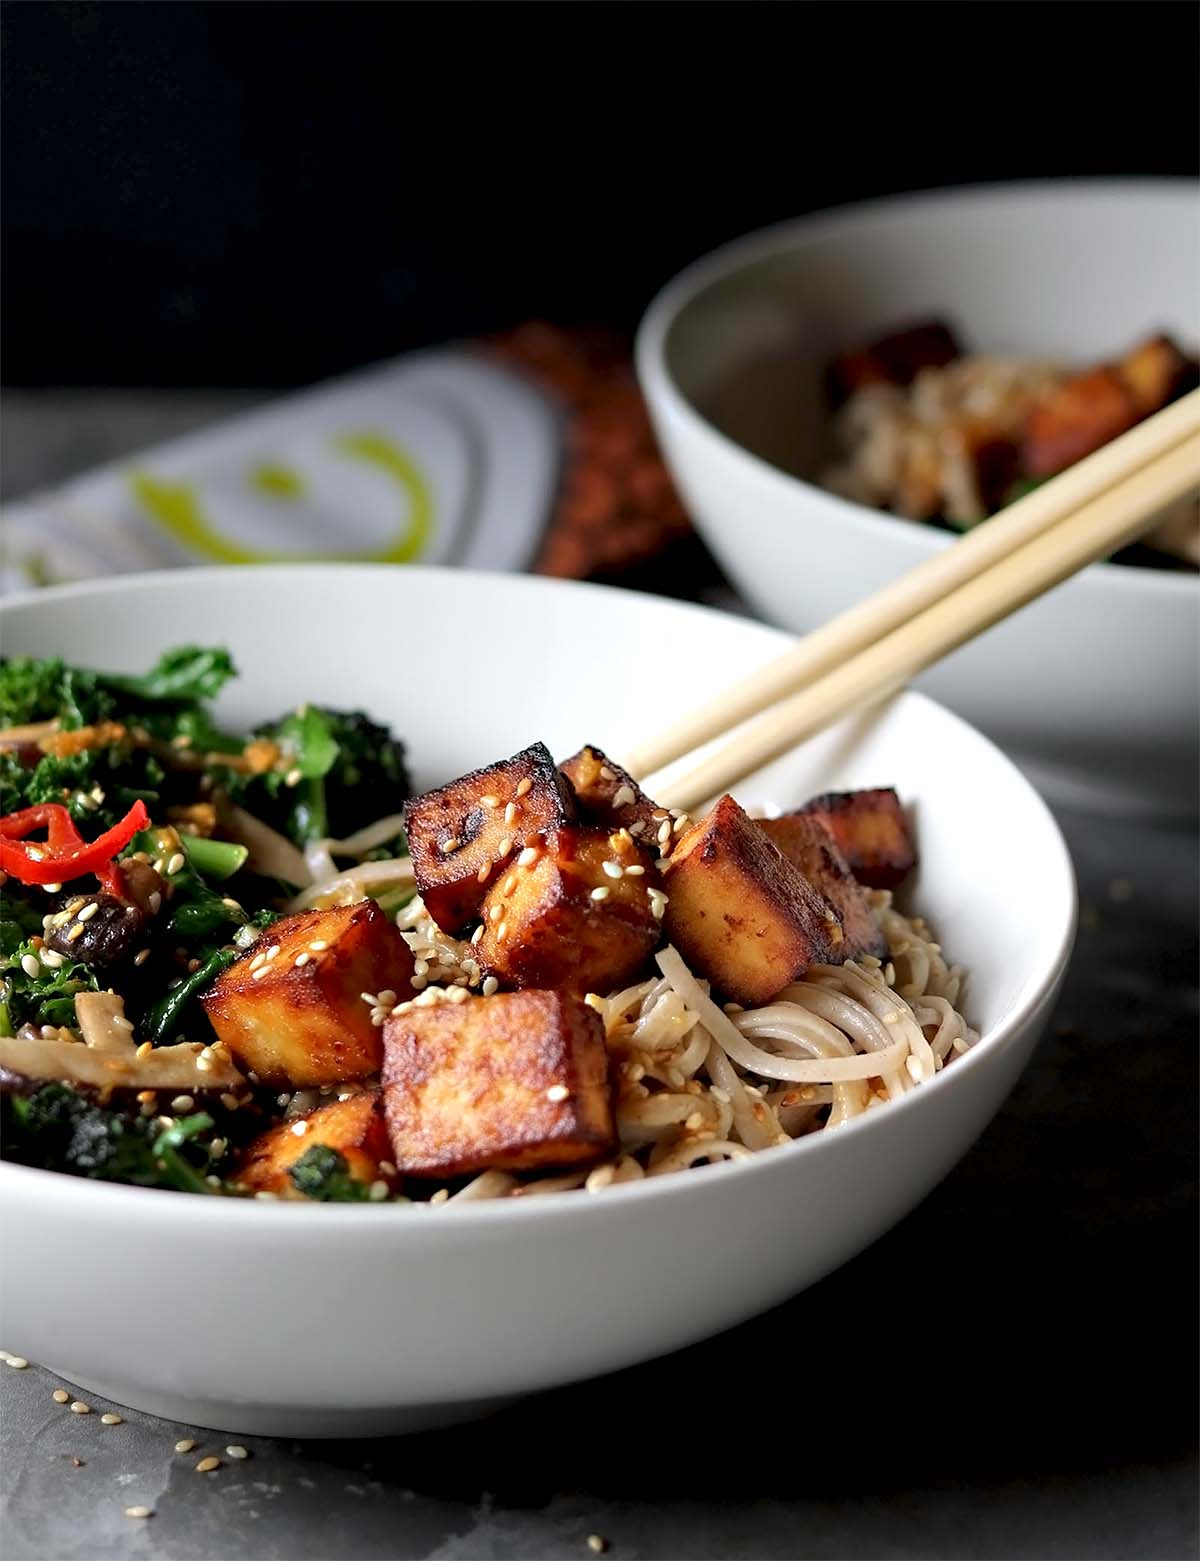 Miso tofu with noodles and broccoli and chili